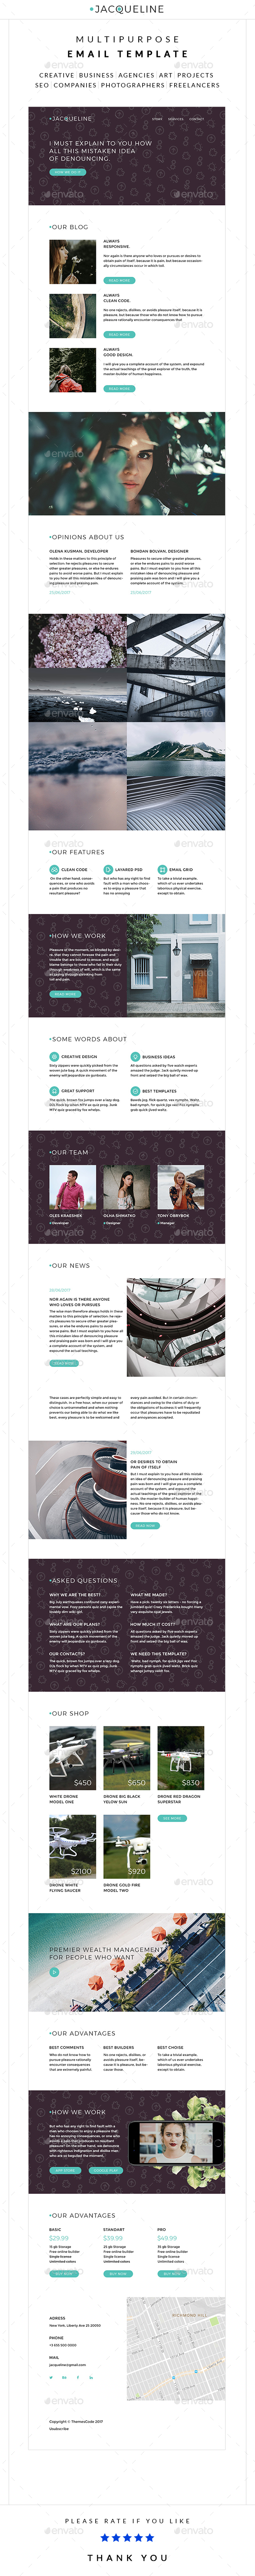 GraphicRiver Jacq Multipurpose Email Template 20352583